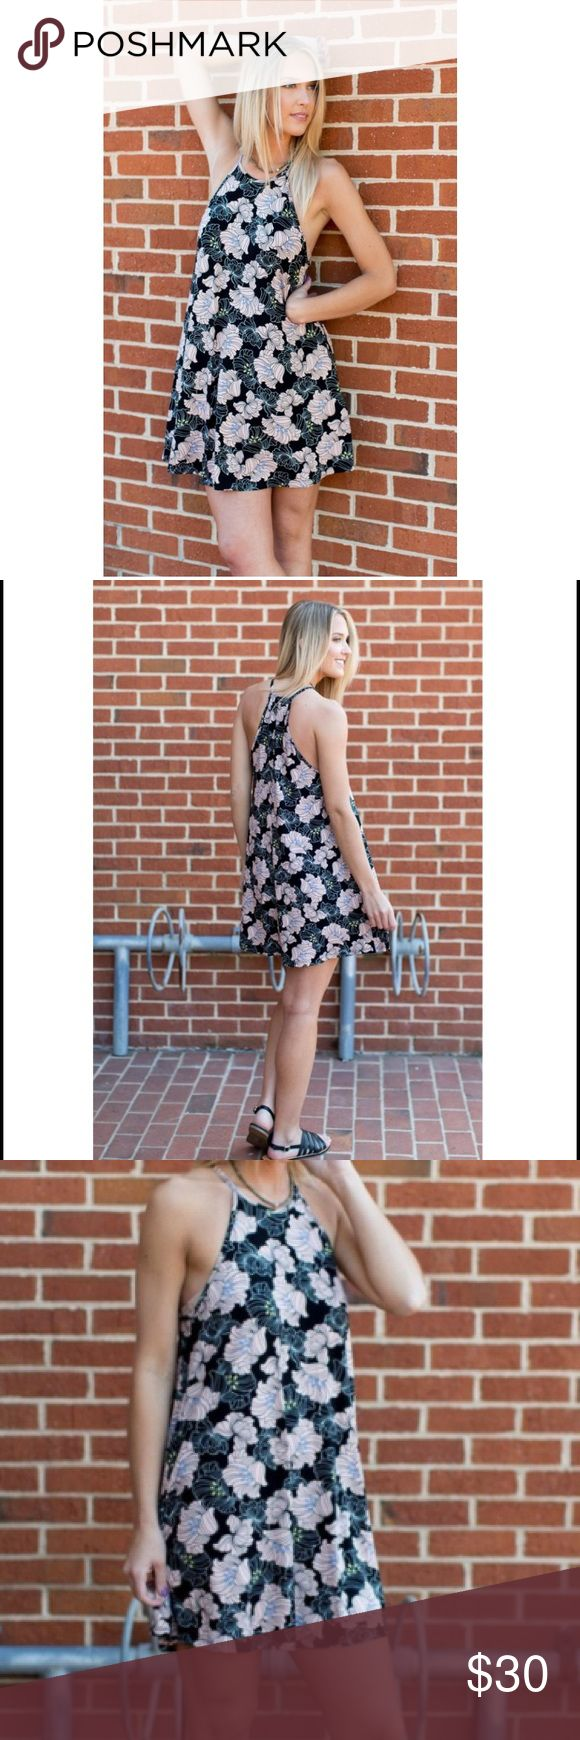 """🍑NWT PEACHY CREEK🍑LILLIAN TRES BIEN DRESS🍑 Channel your inner flower child in this elegant floral patterned dress perfect for warm weather.  Lightweight material Racerback style 95% rayon; 5% Spandex Hand wash cold measurements are free and flowy bust 19"""" waist 21 1/2"""" and length 33 1/2"""" Dresses Midi"""